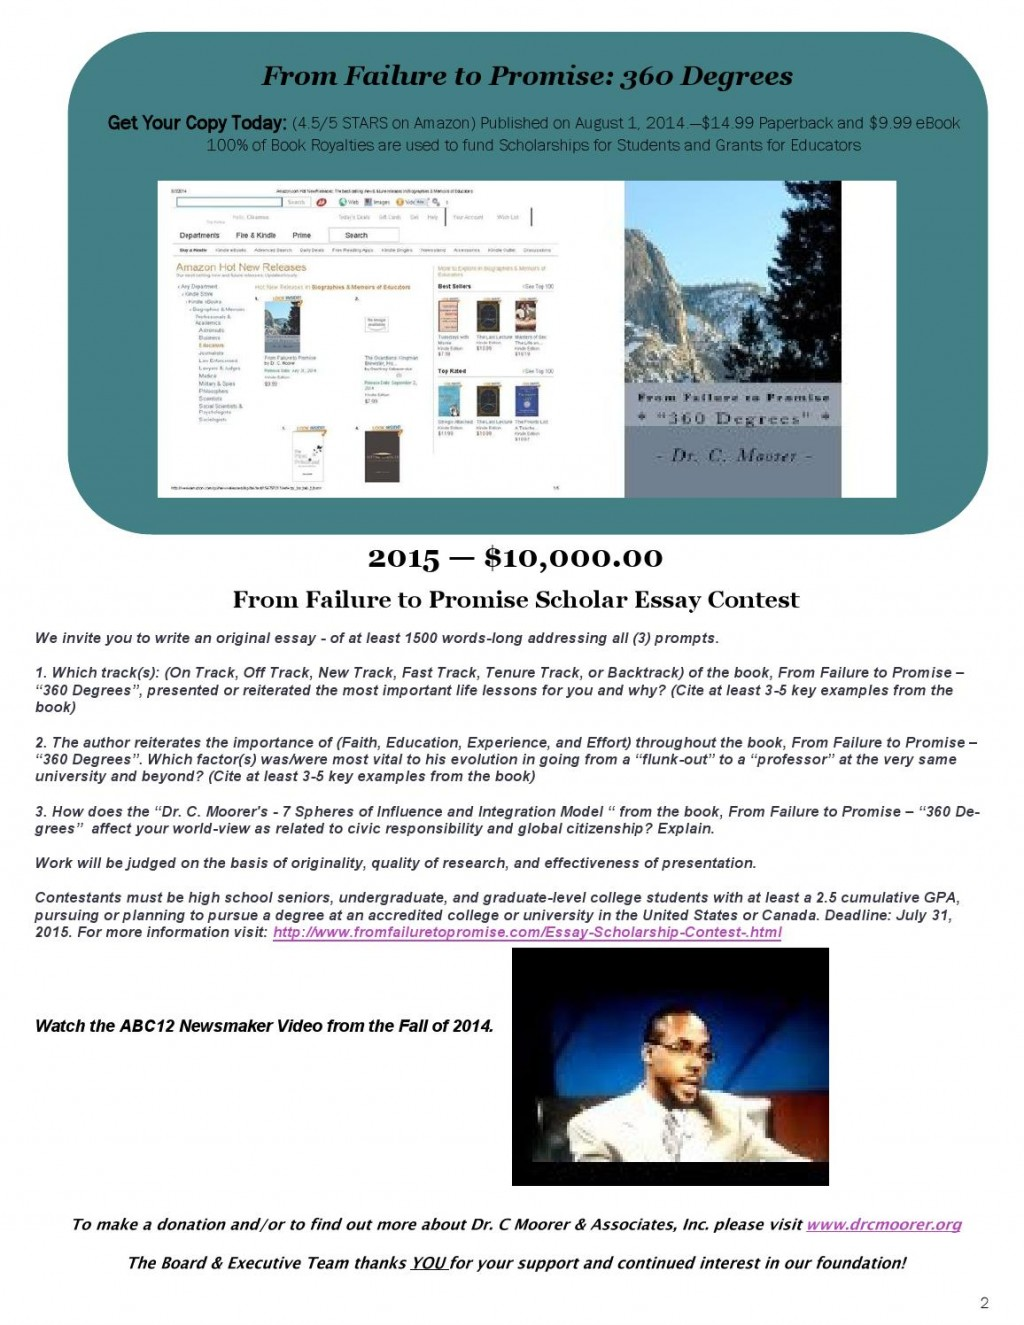 004 From Failure To Promise Essay Contest Page 2 Unique Large